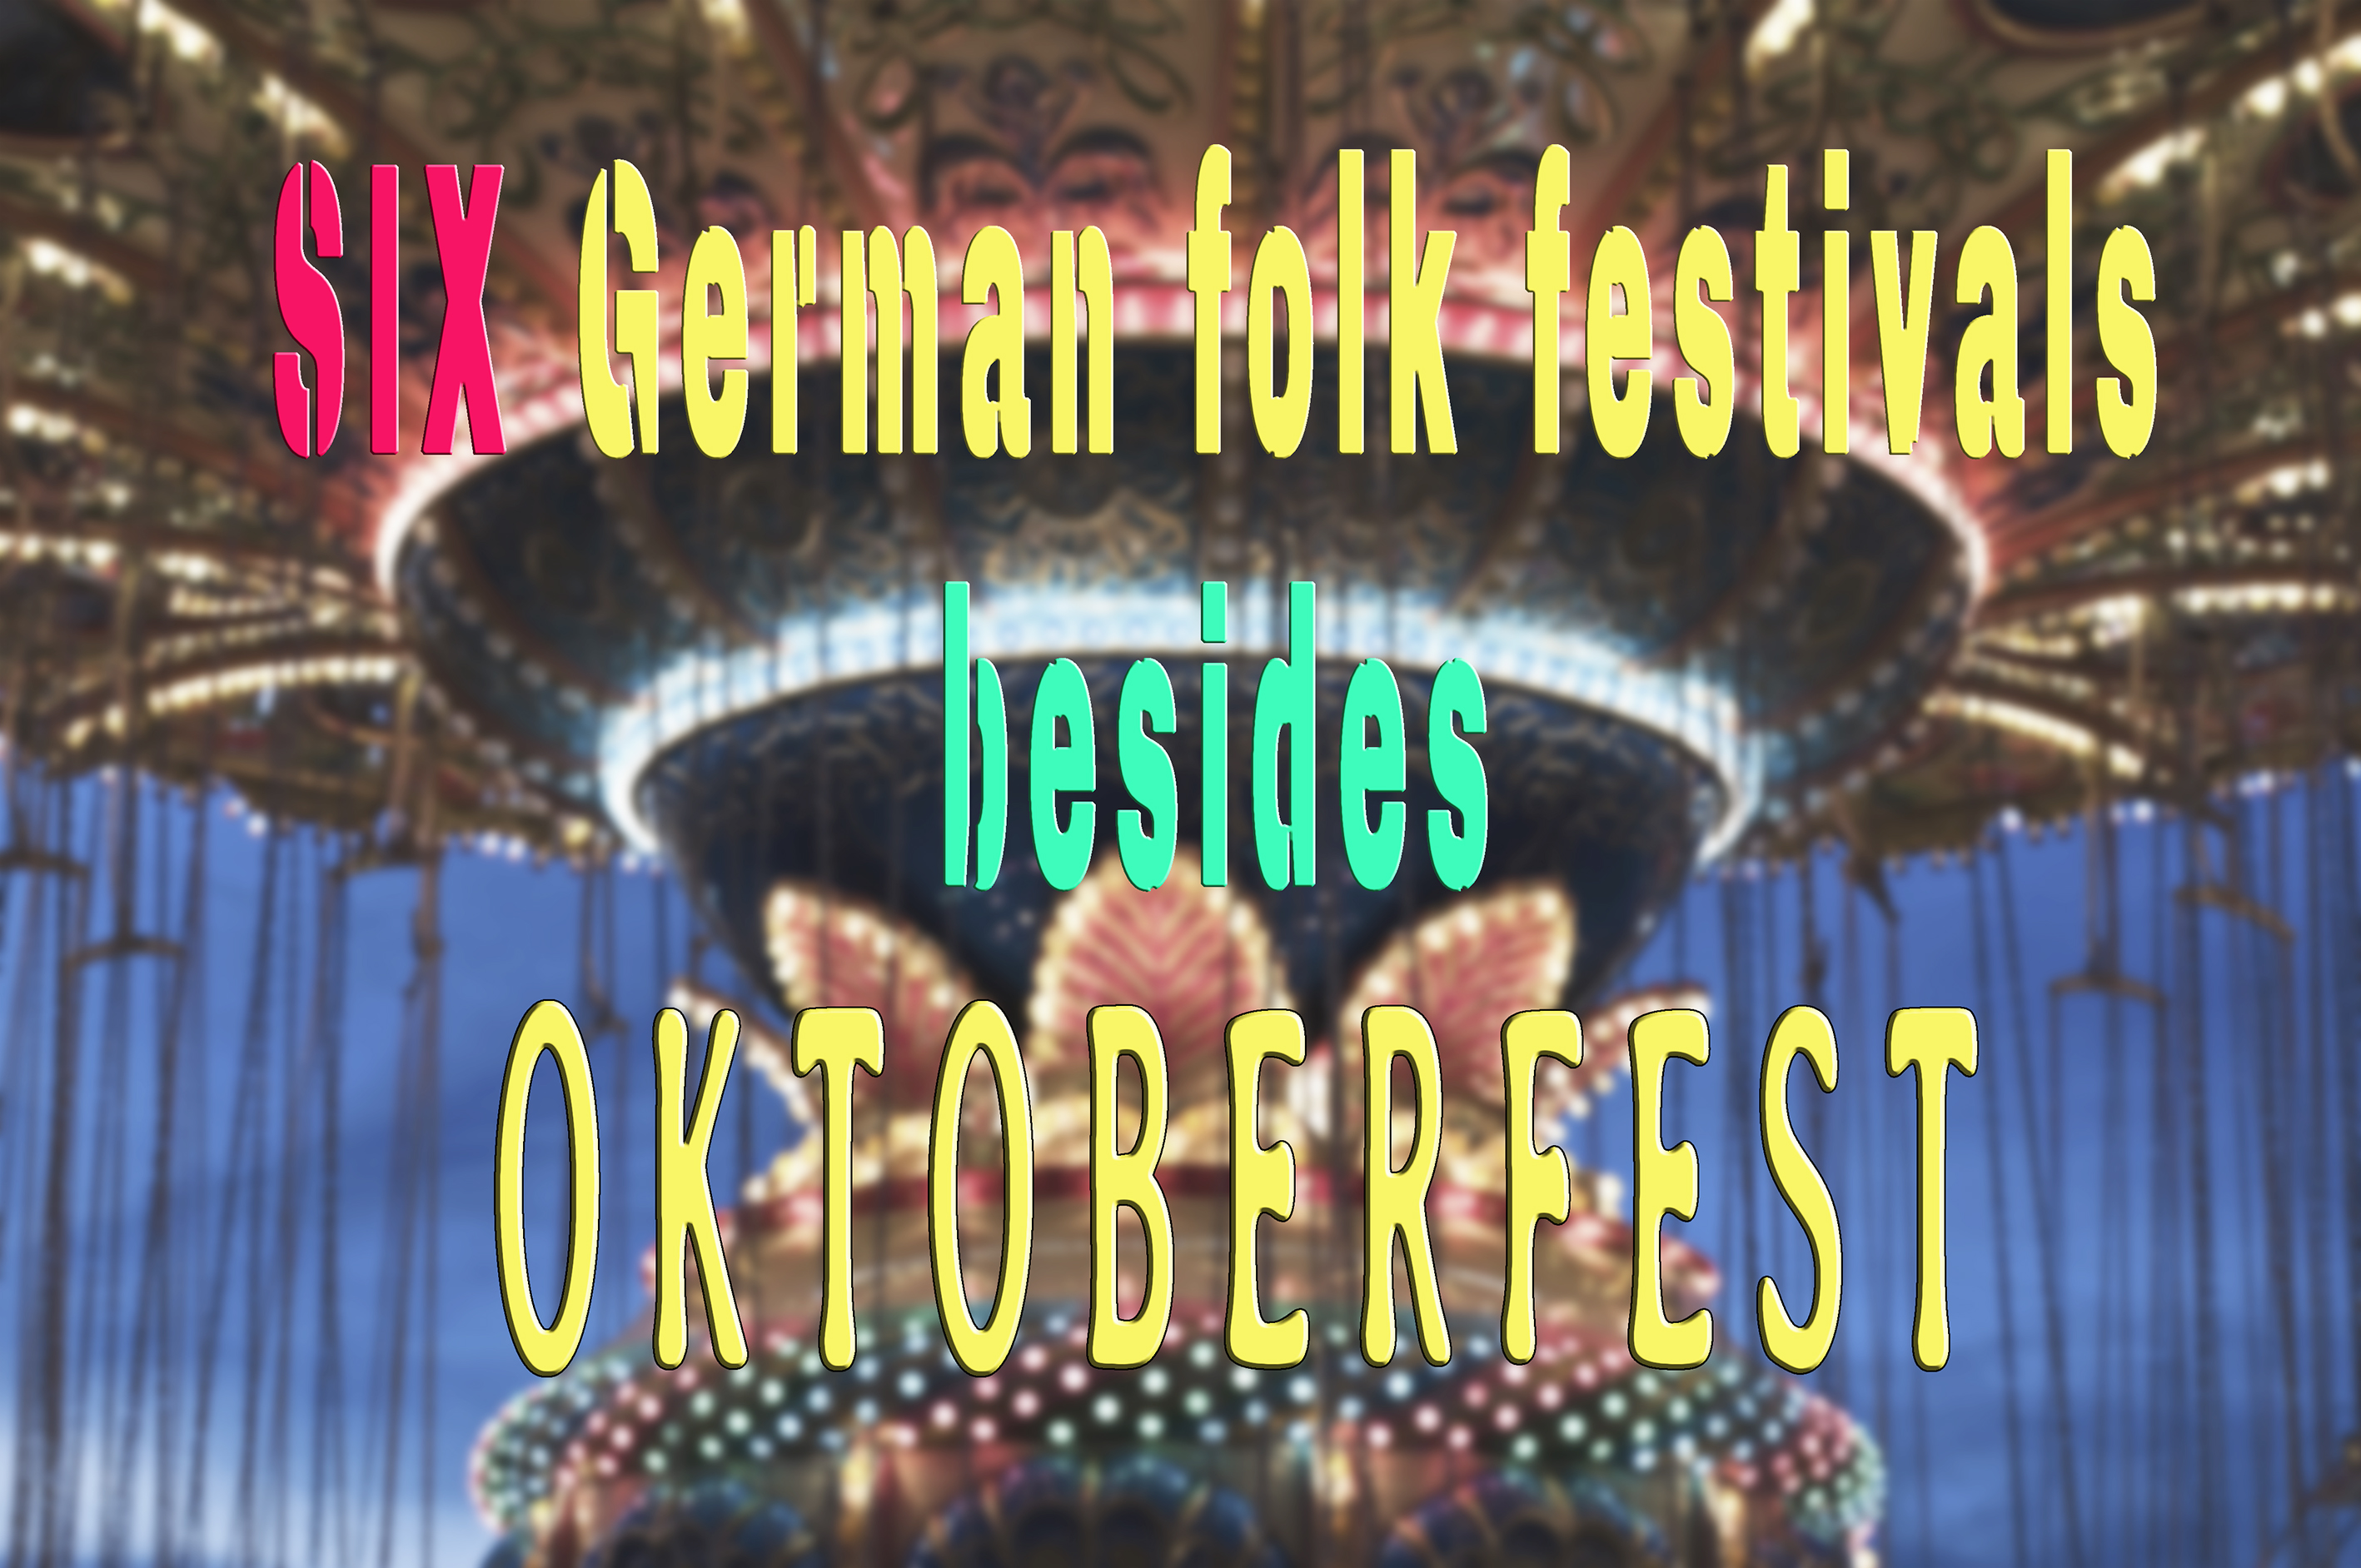 folk festival, oktoberfest, germany